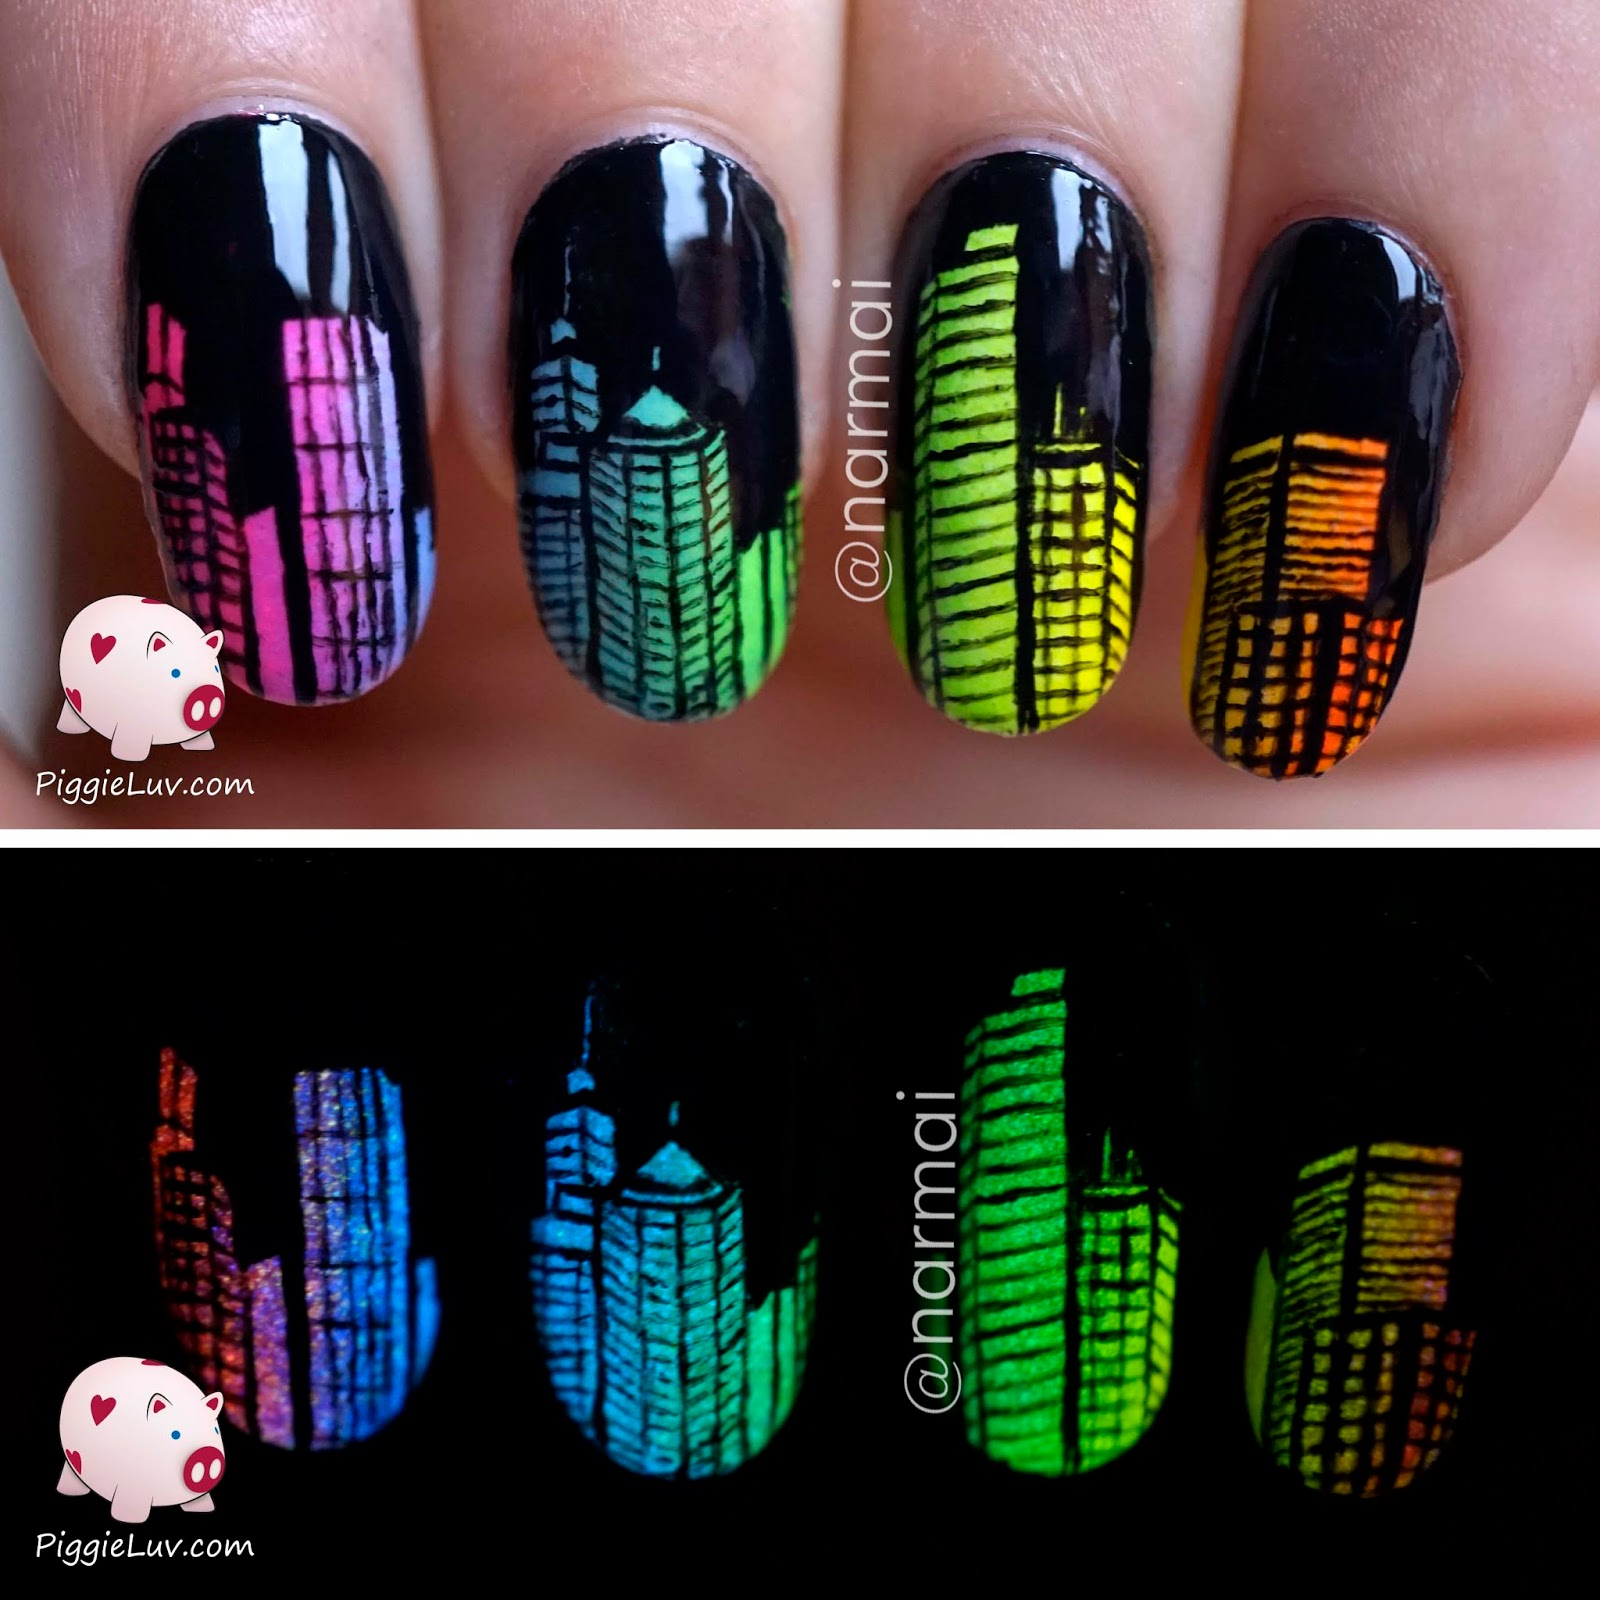 PiggieLuv: Glow in the dark city skyline nail art